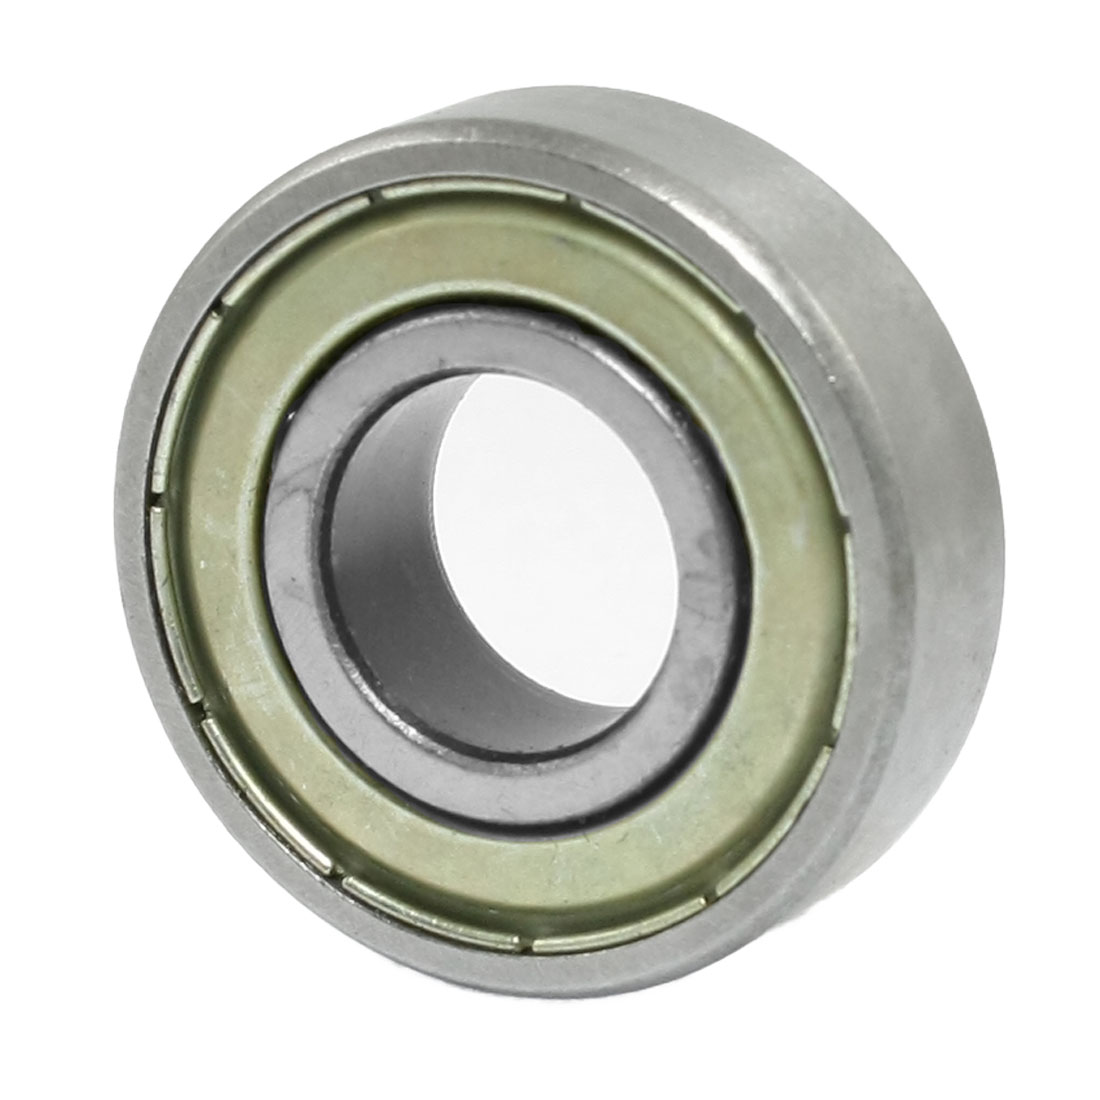 17mm-x-40mm-x-12mm-Metal-Deep-Groove-Ball-Bearings-6203-ZZ